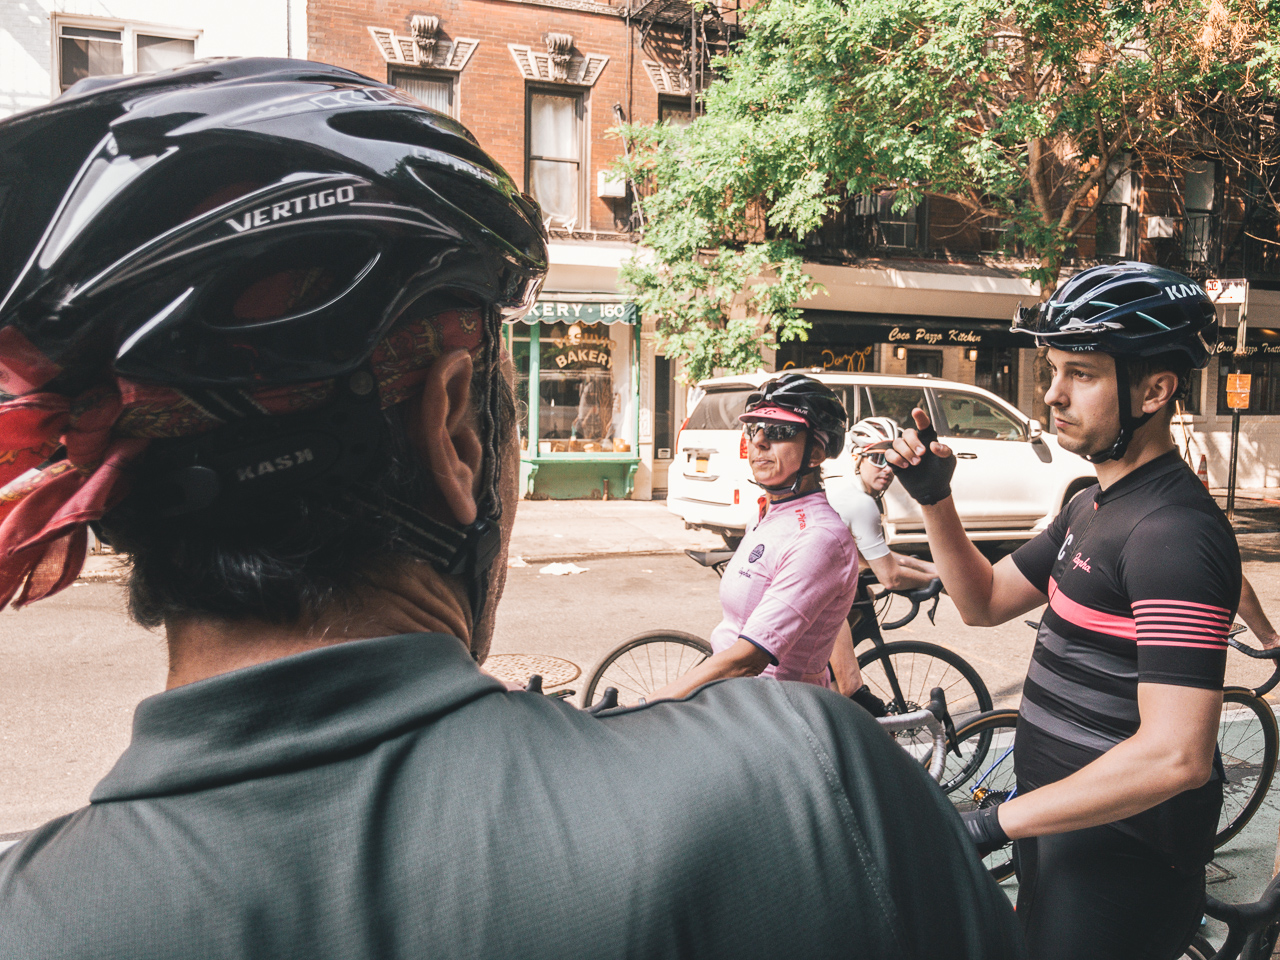 Safety first - Because it's an open ride, there are bound to be differences in each person's familiarity with group riding. The safety brief helps get everyone on the same page and sets expectations for the ride.